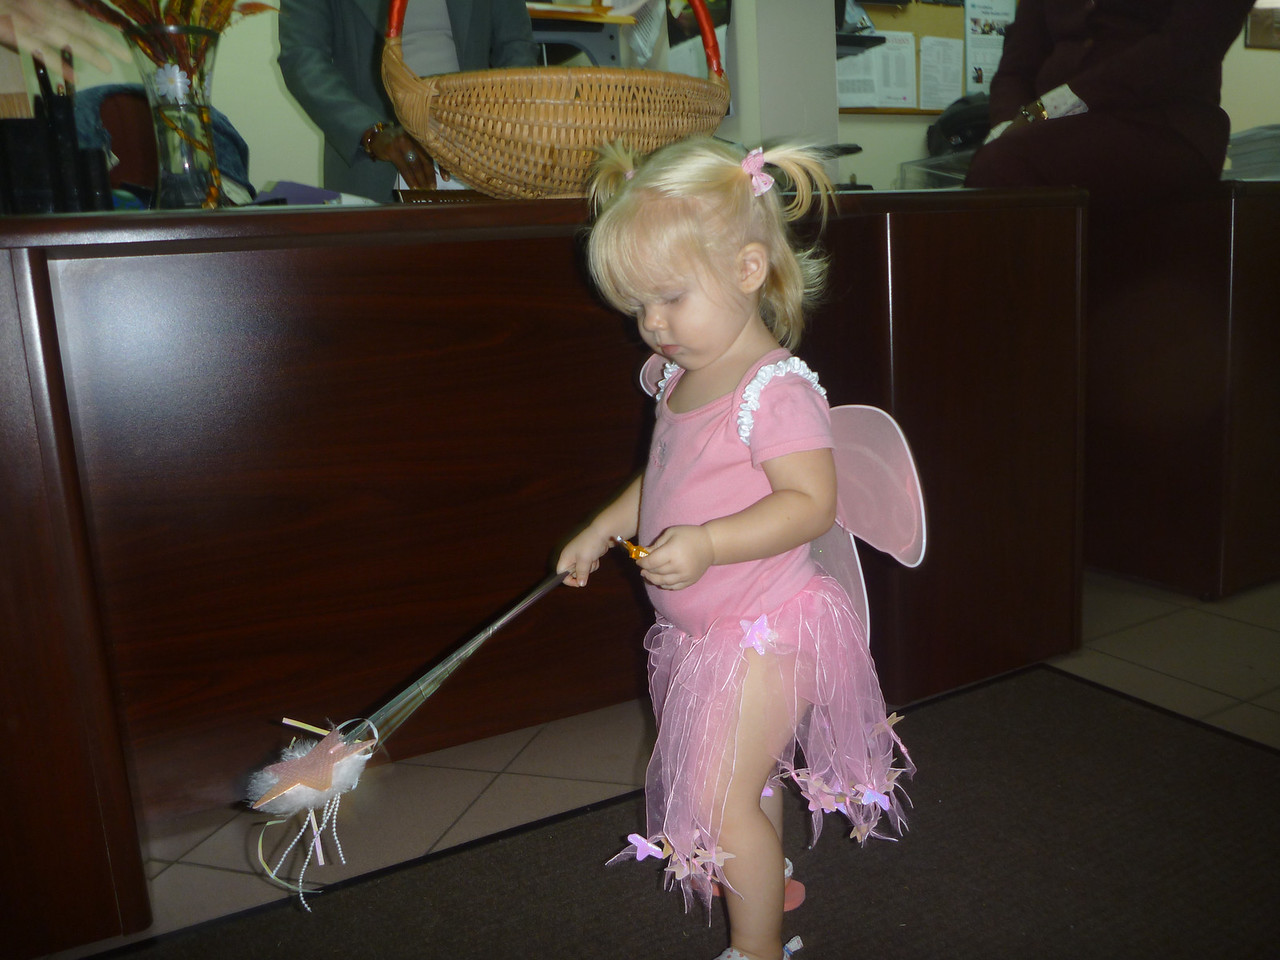 Halloween and trick or treating as a fairy (costume choices are limited in Grenada and we're not very creative)